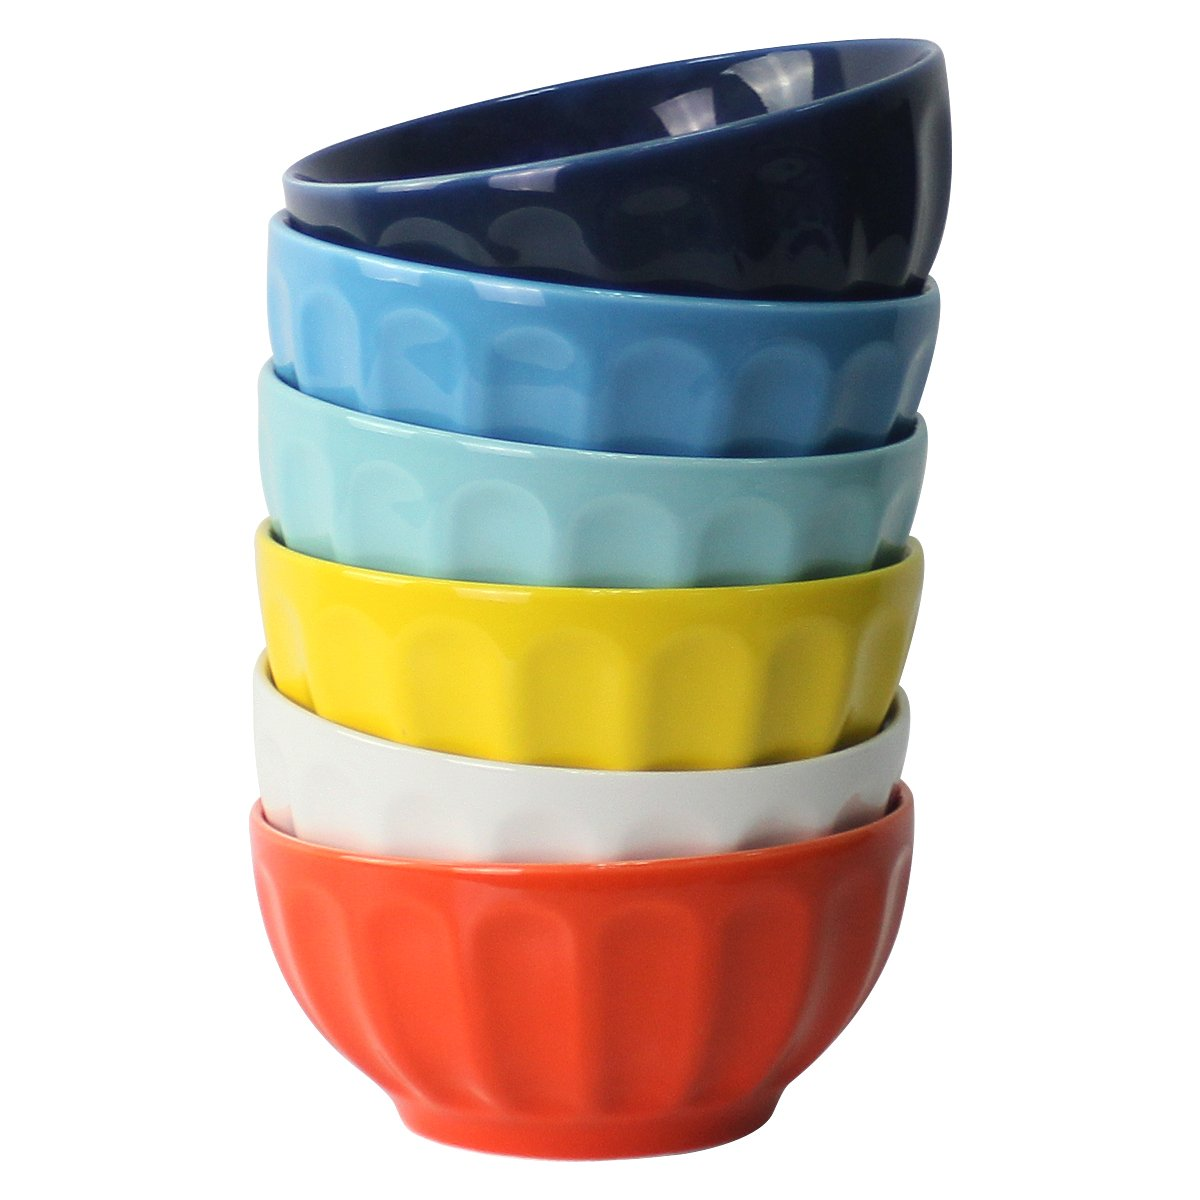 Sweese 26 oz Porcelain Fluted Bowls - Set of 6